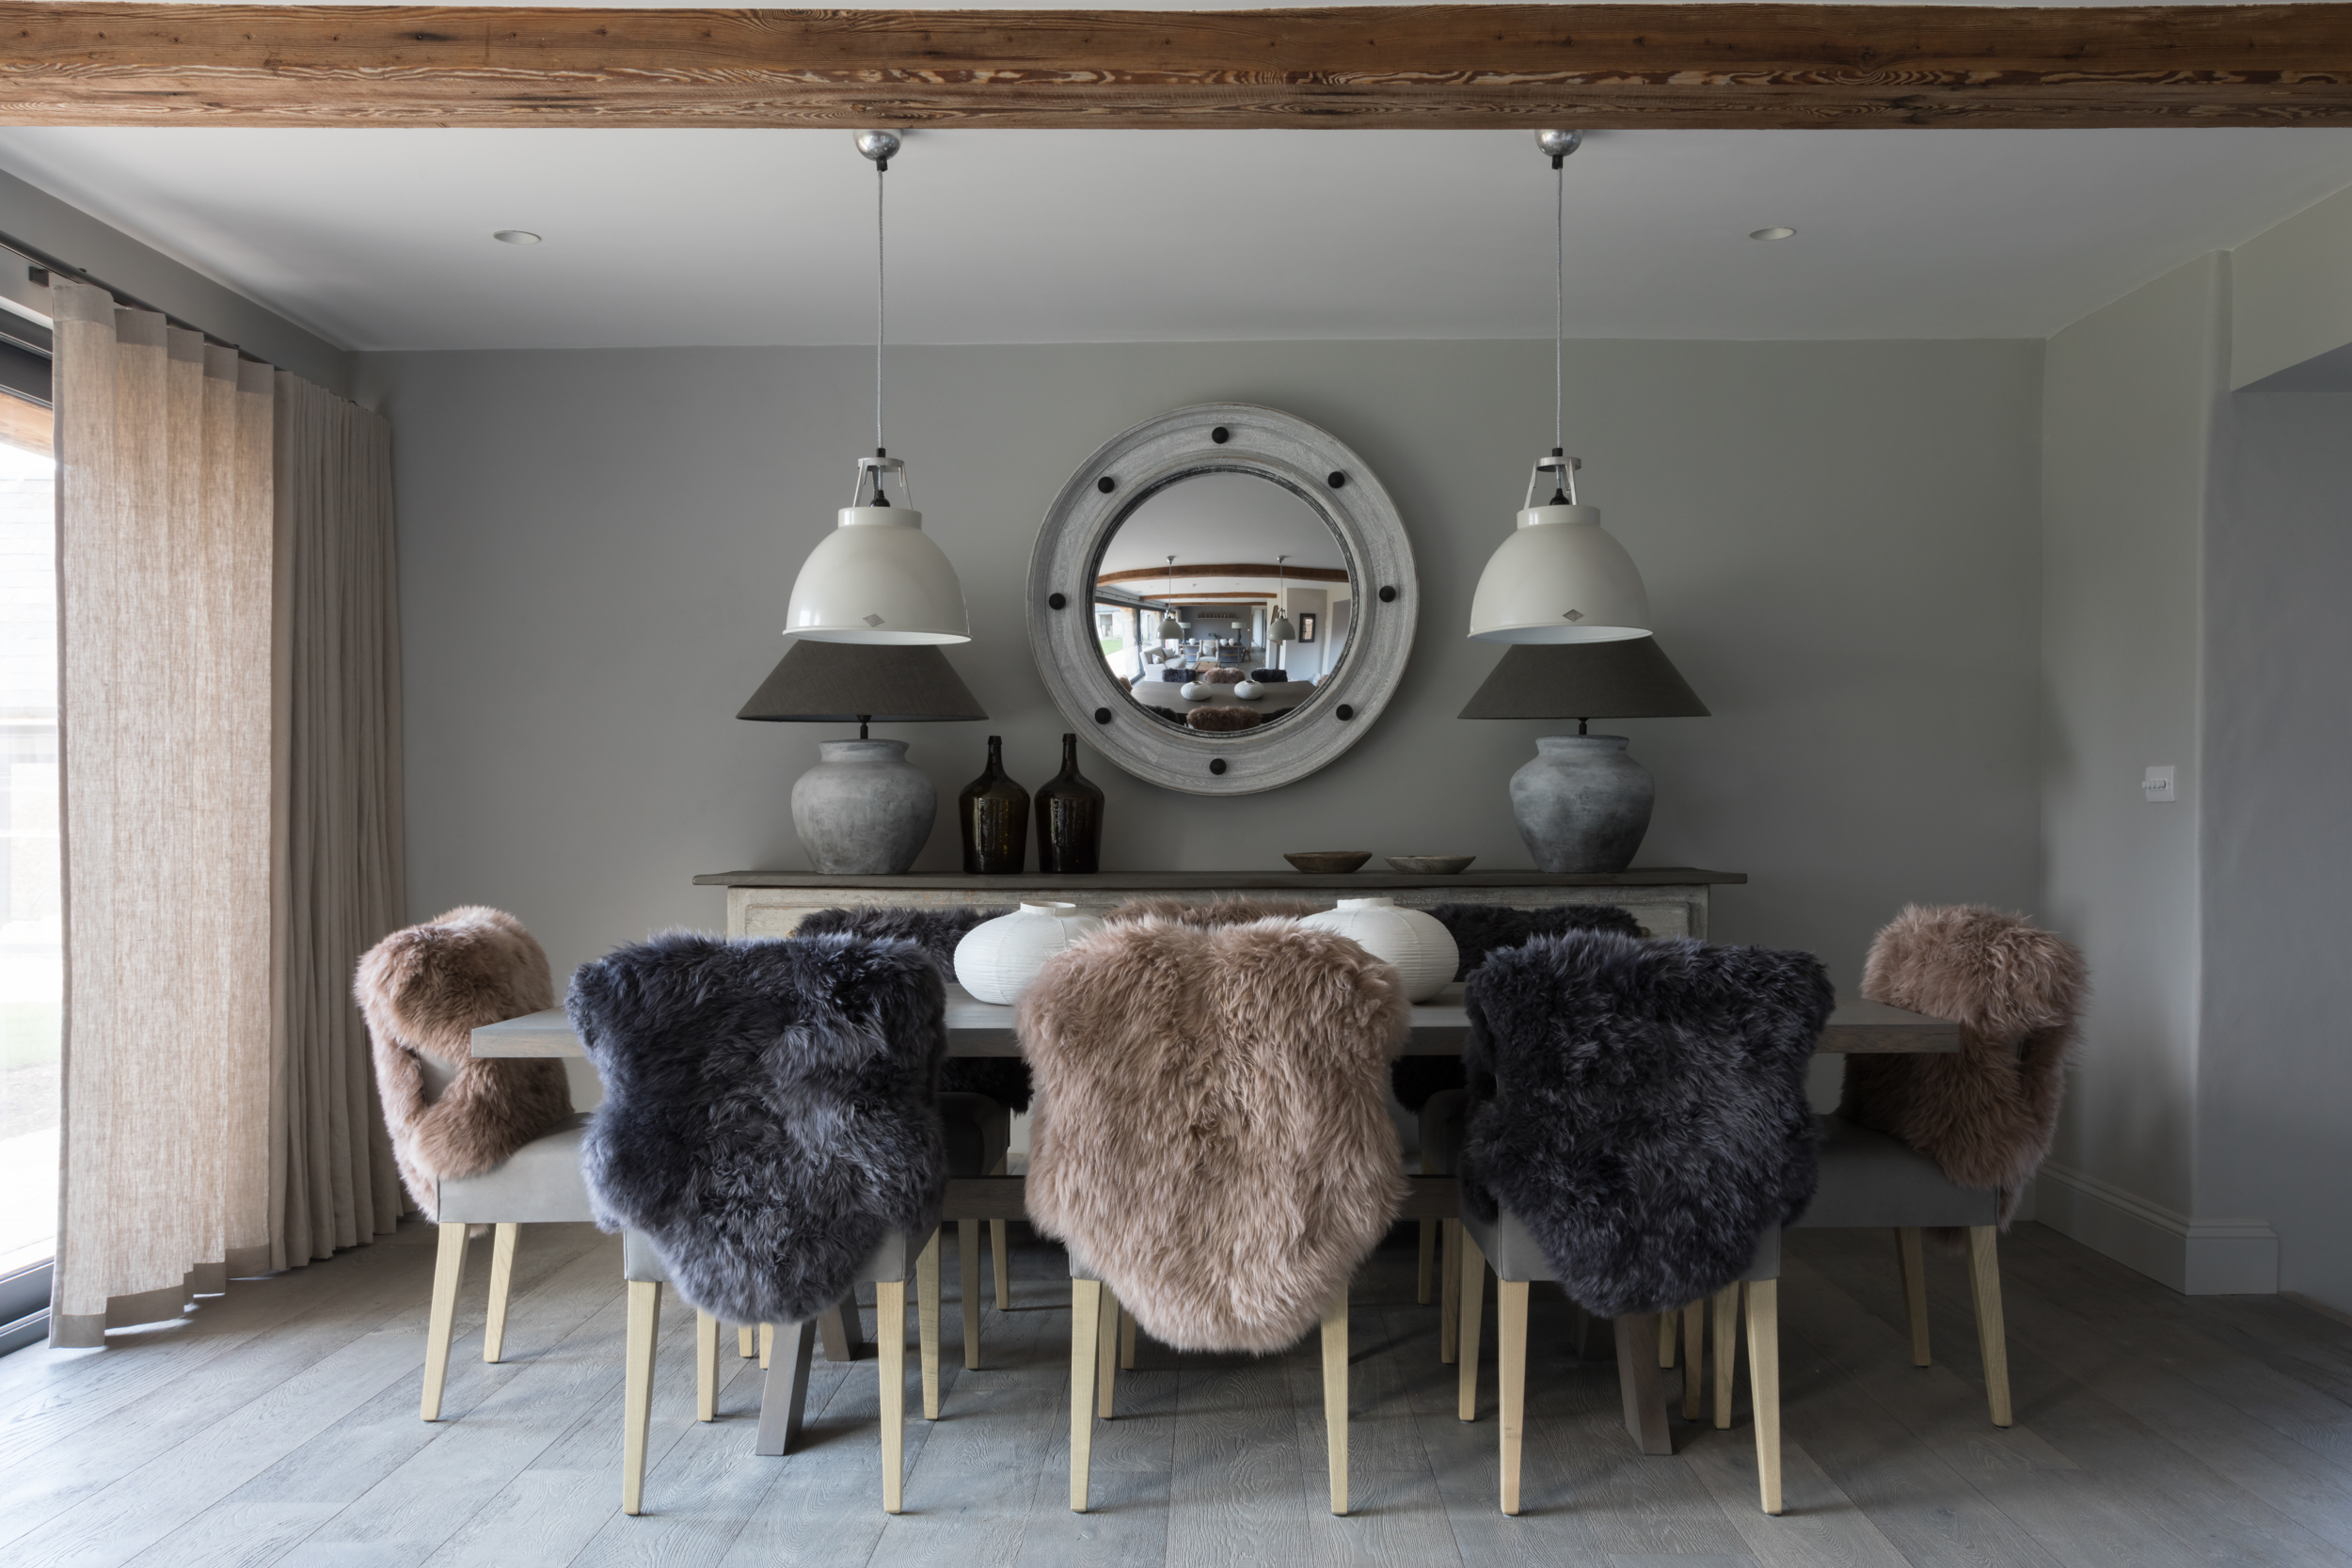 Paul Craig, Interior Photographer, Residential Photography, London, Dining Room